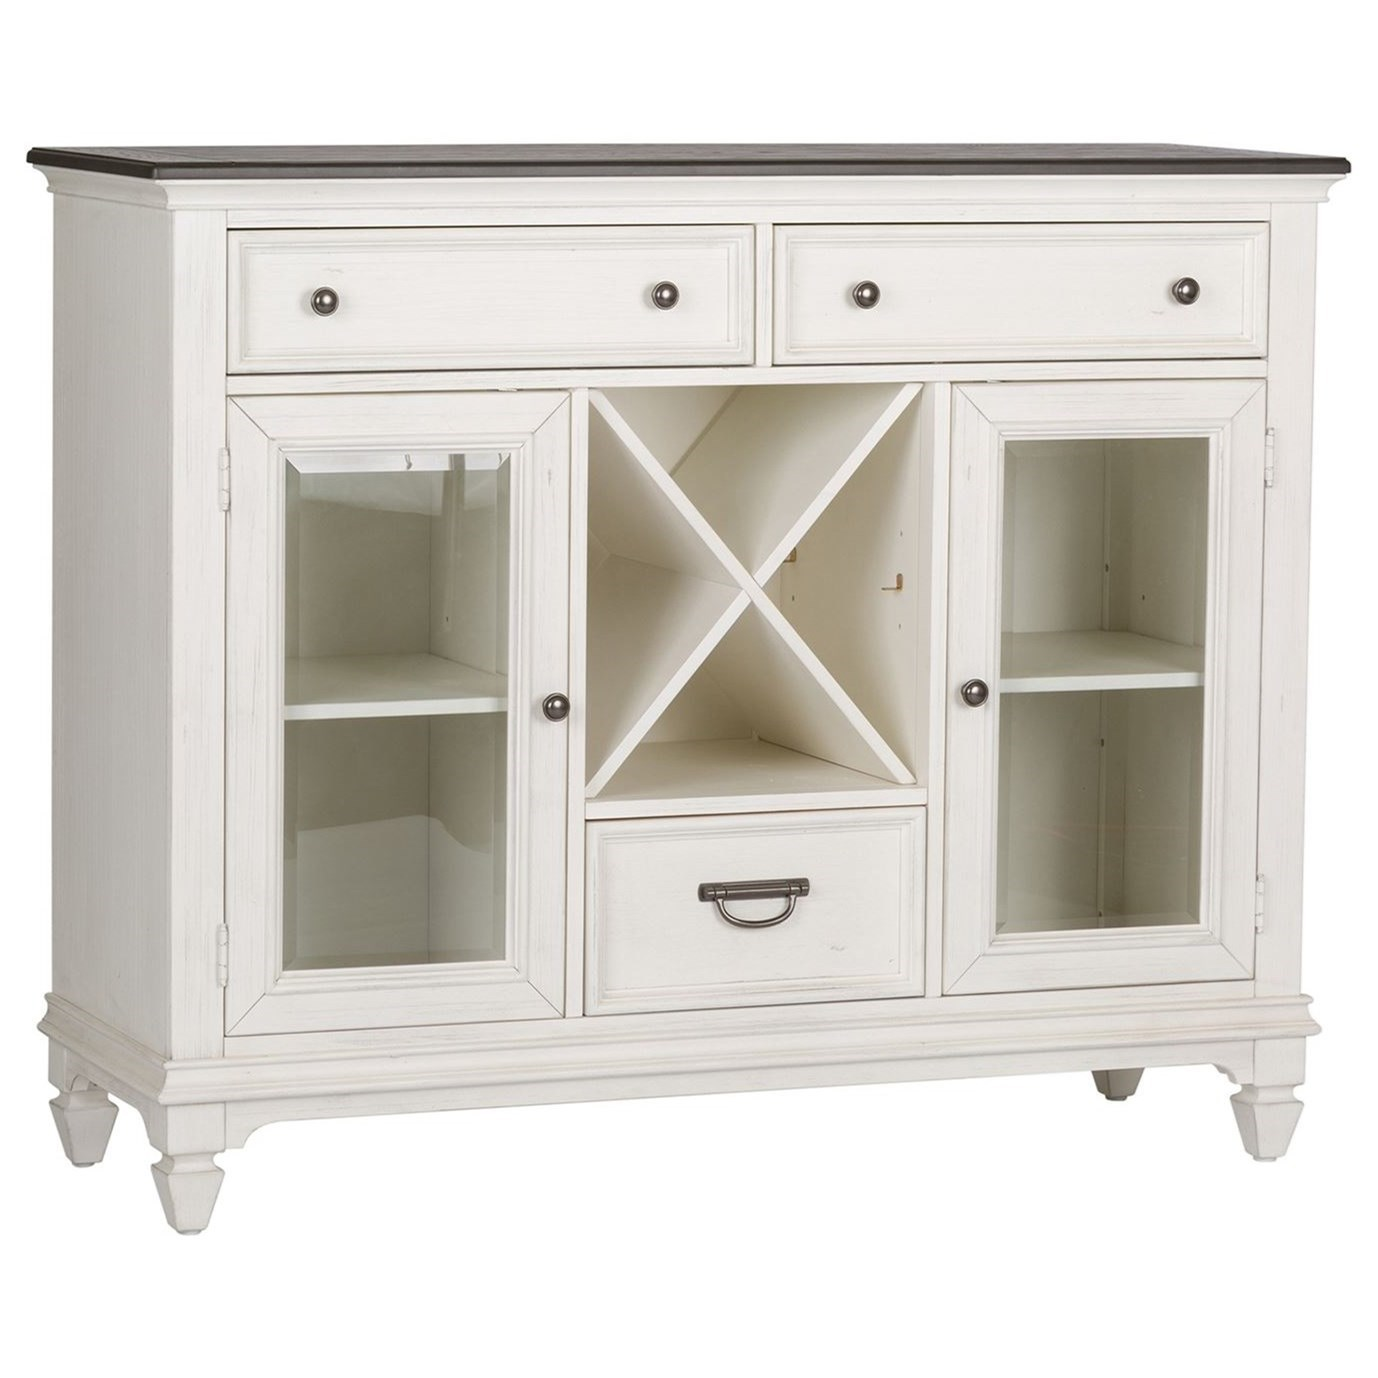 Allyson Park 3 Drawer 2 Door Buffet by Liberty Furniture at Lapeer Furniture & Mattress Center